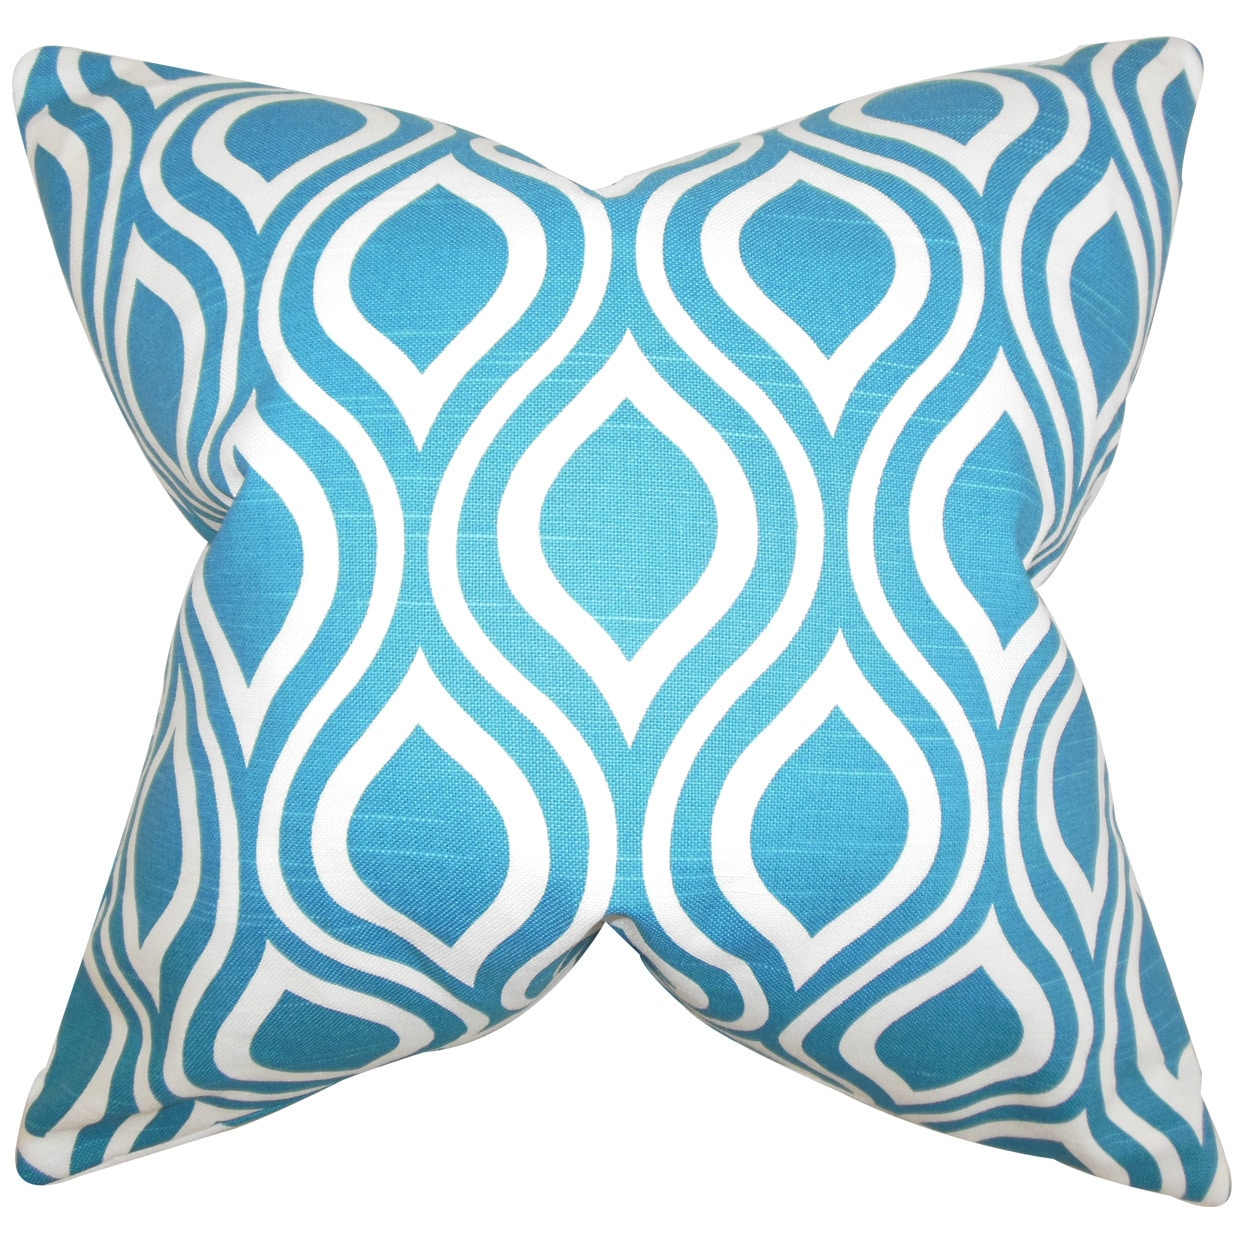 "The Pillow Collection Poplar Geometric 22"" x 22"" Down Feather Throw Pillow Blue"